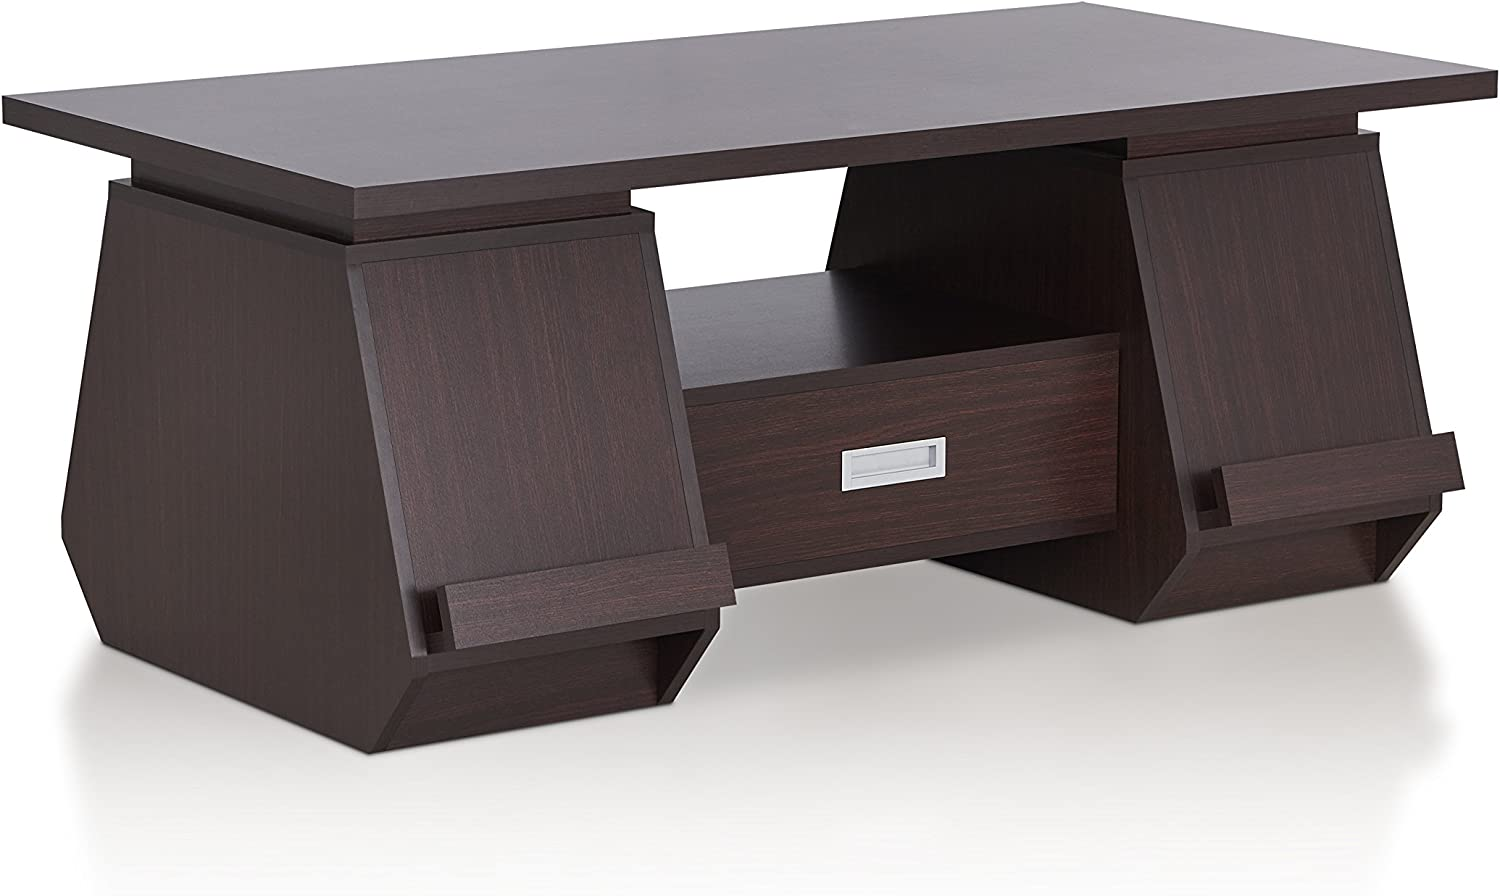 Furniture of America Tudora Contemporary Wood Coffee Table with 2-Side Cabinet, Walnut